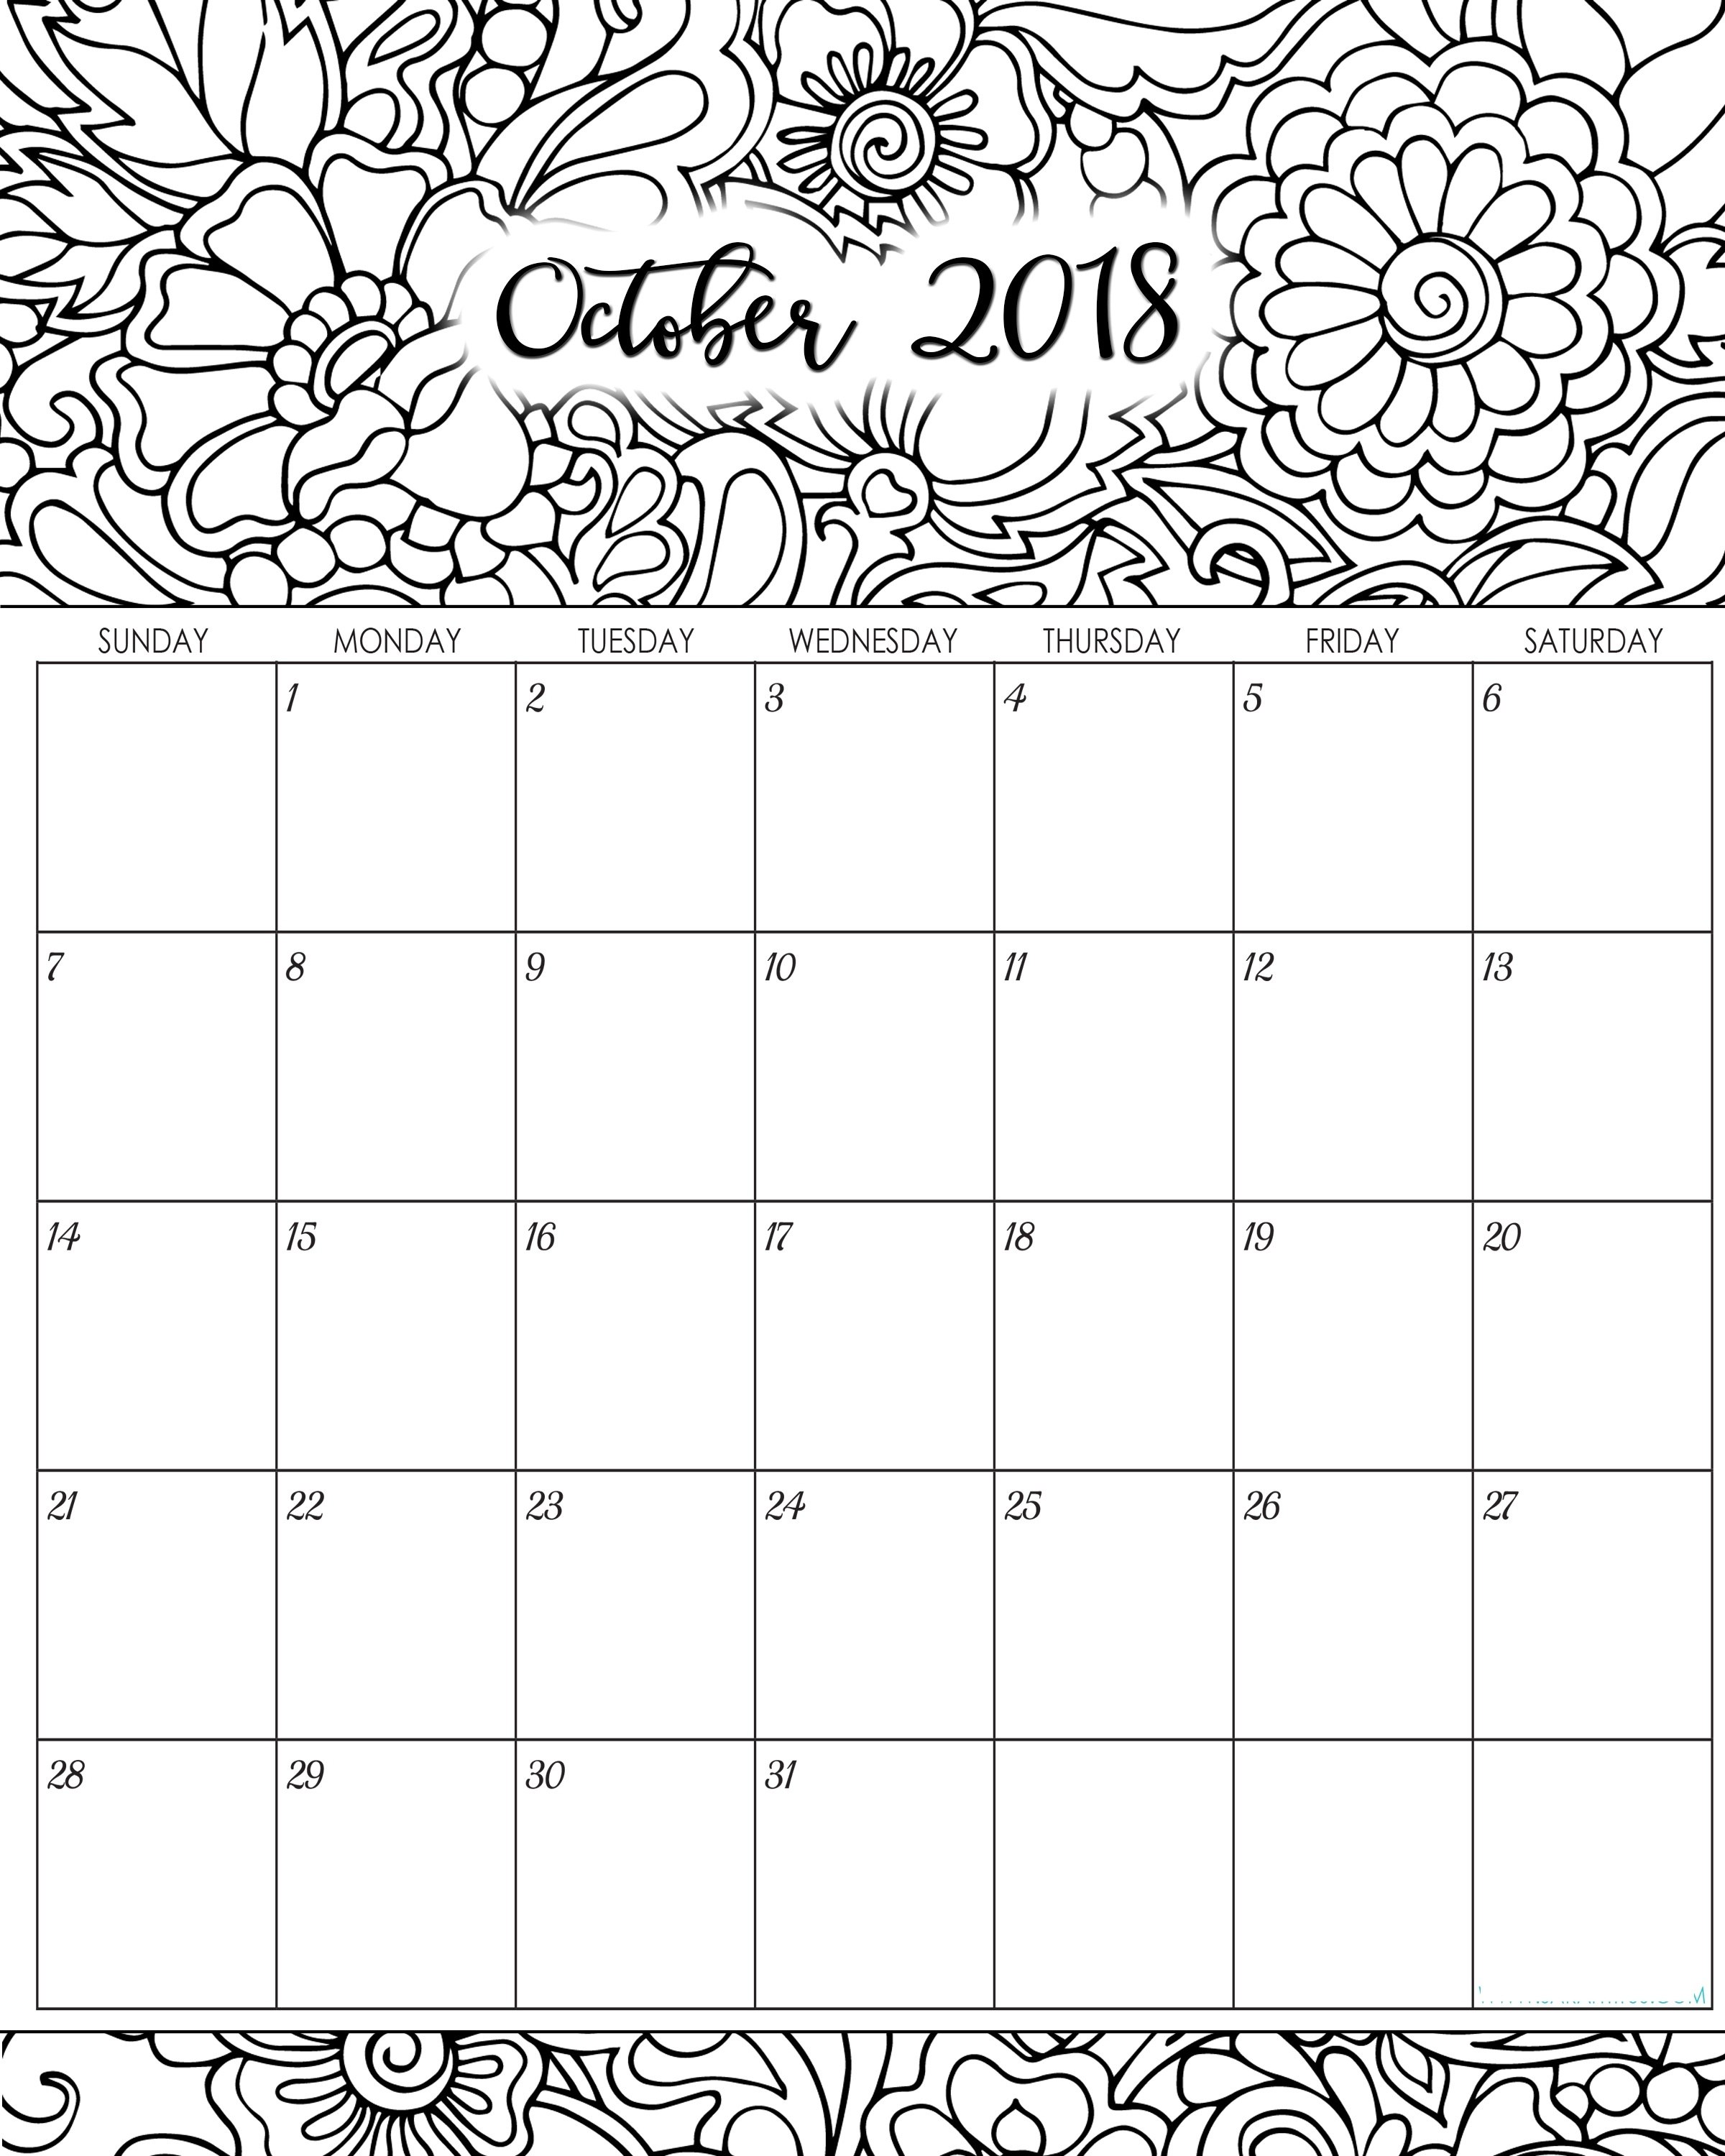 october 2018 calendar printable word desktop template Printable October 2018 Calendar erdferdf